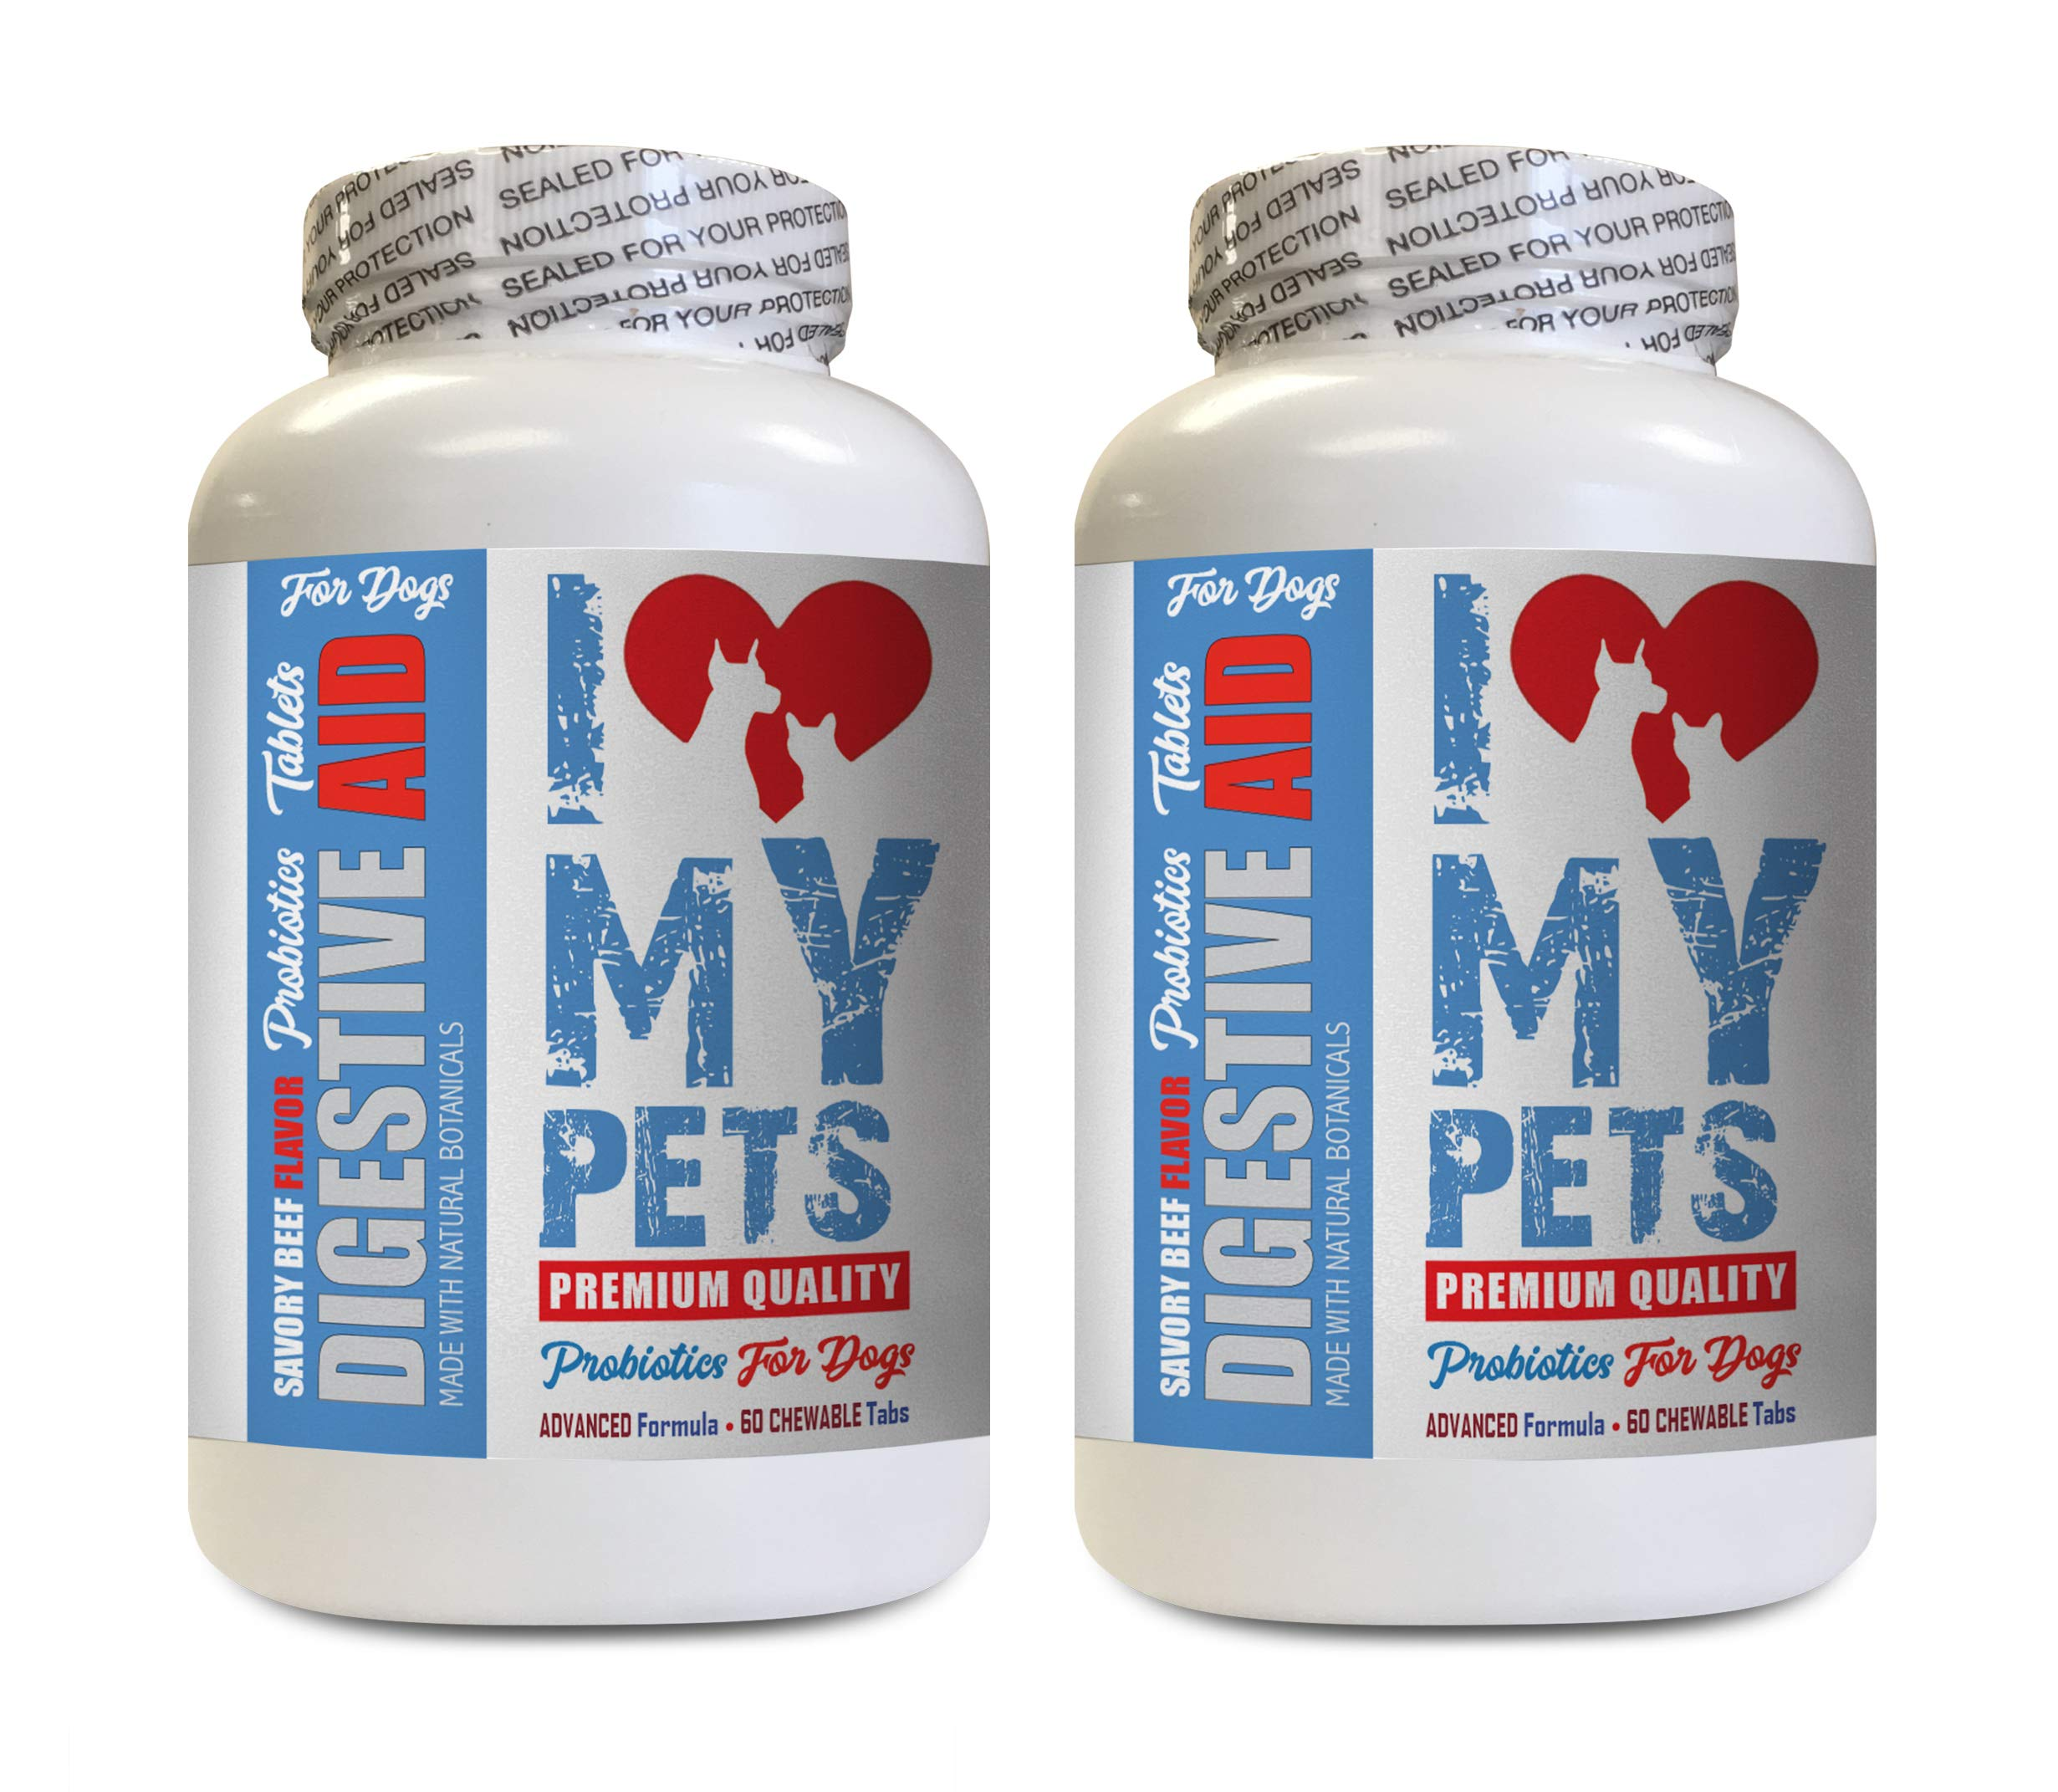 I LOVE MY PETS LLC Digestive Dog Supplement - Digestive AID for Dogs - PET PROBIOTIC Vegetable stearic - 120 Treats (2 Bottles) by I LOVE MY PETS LLC